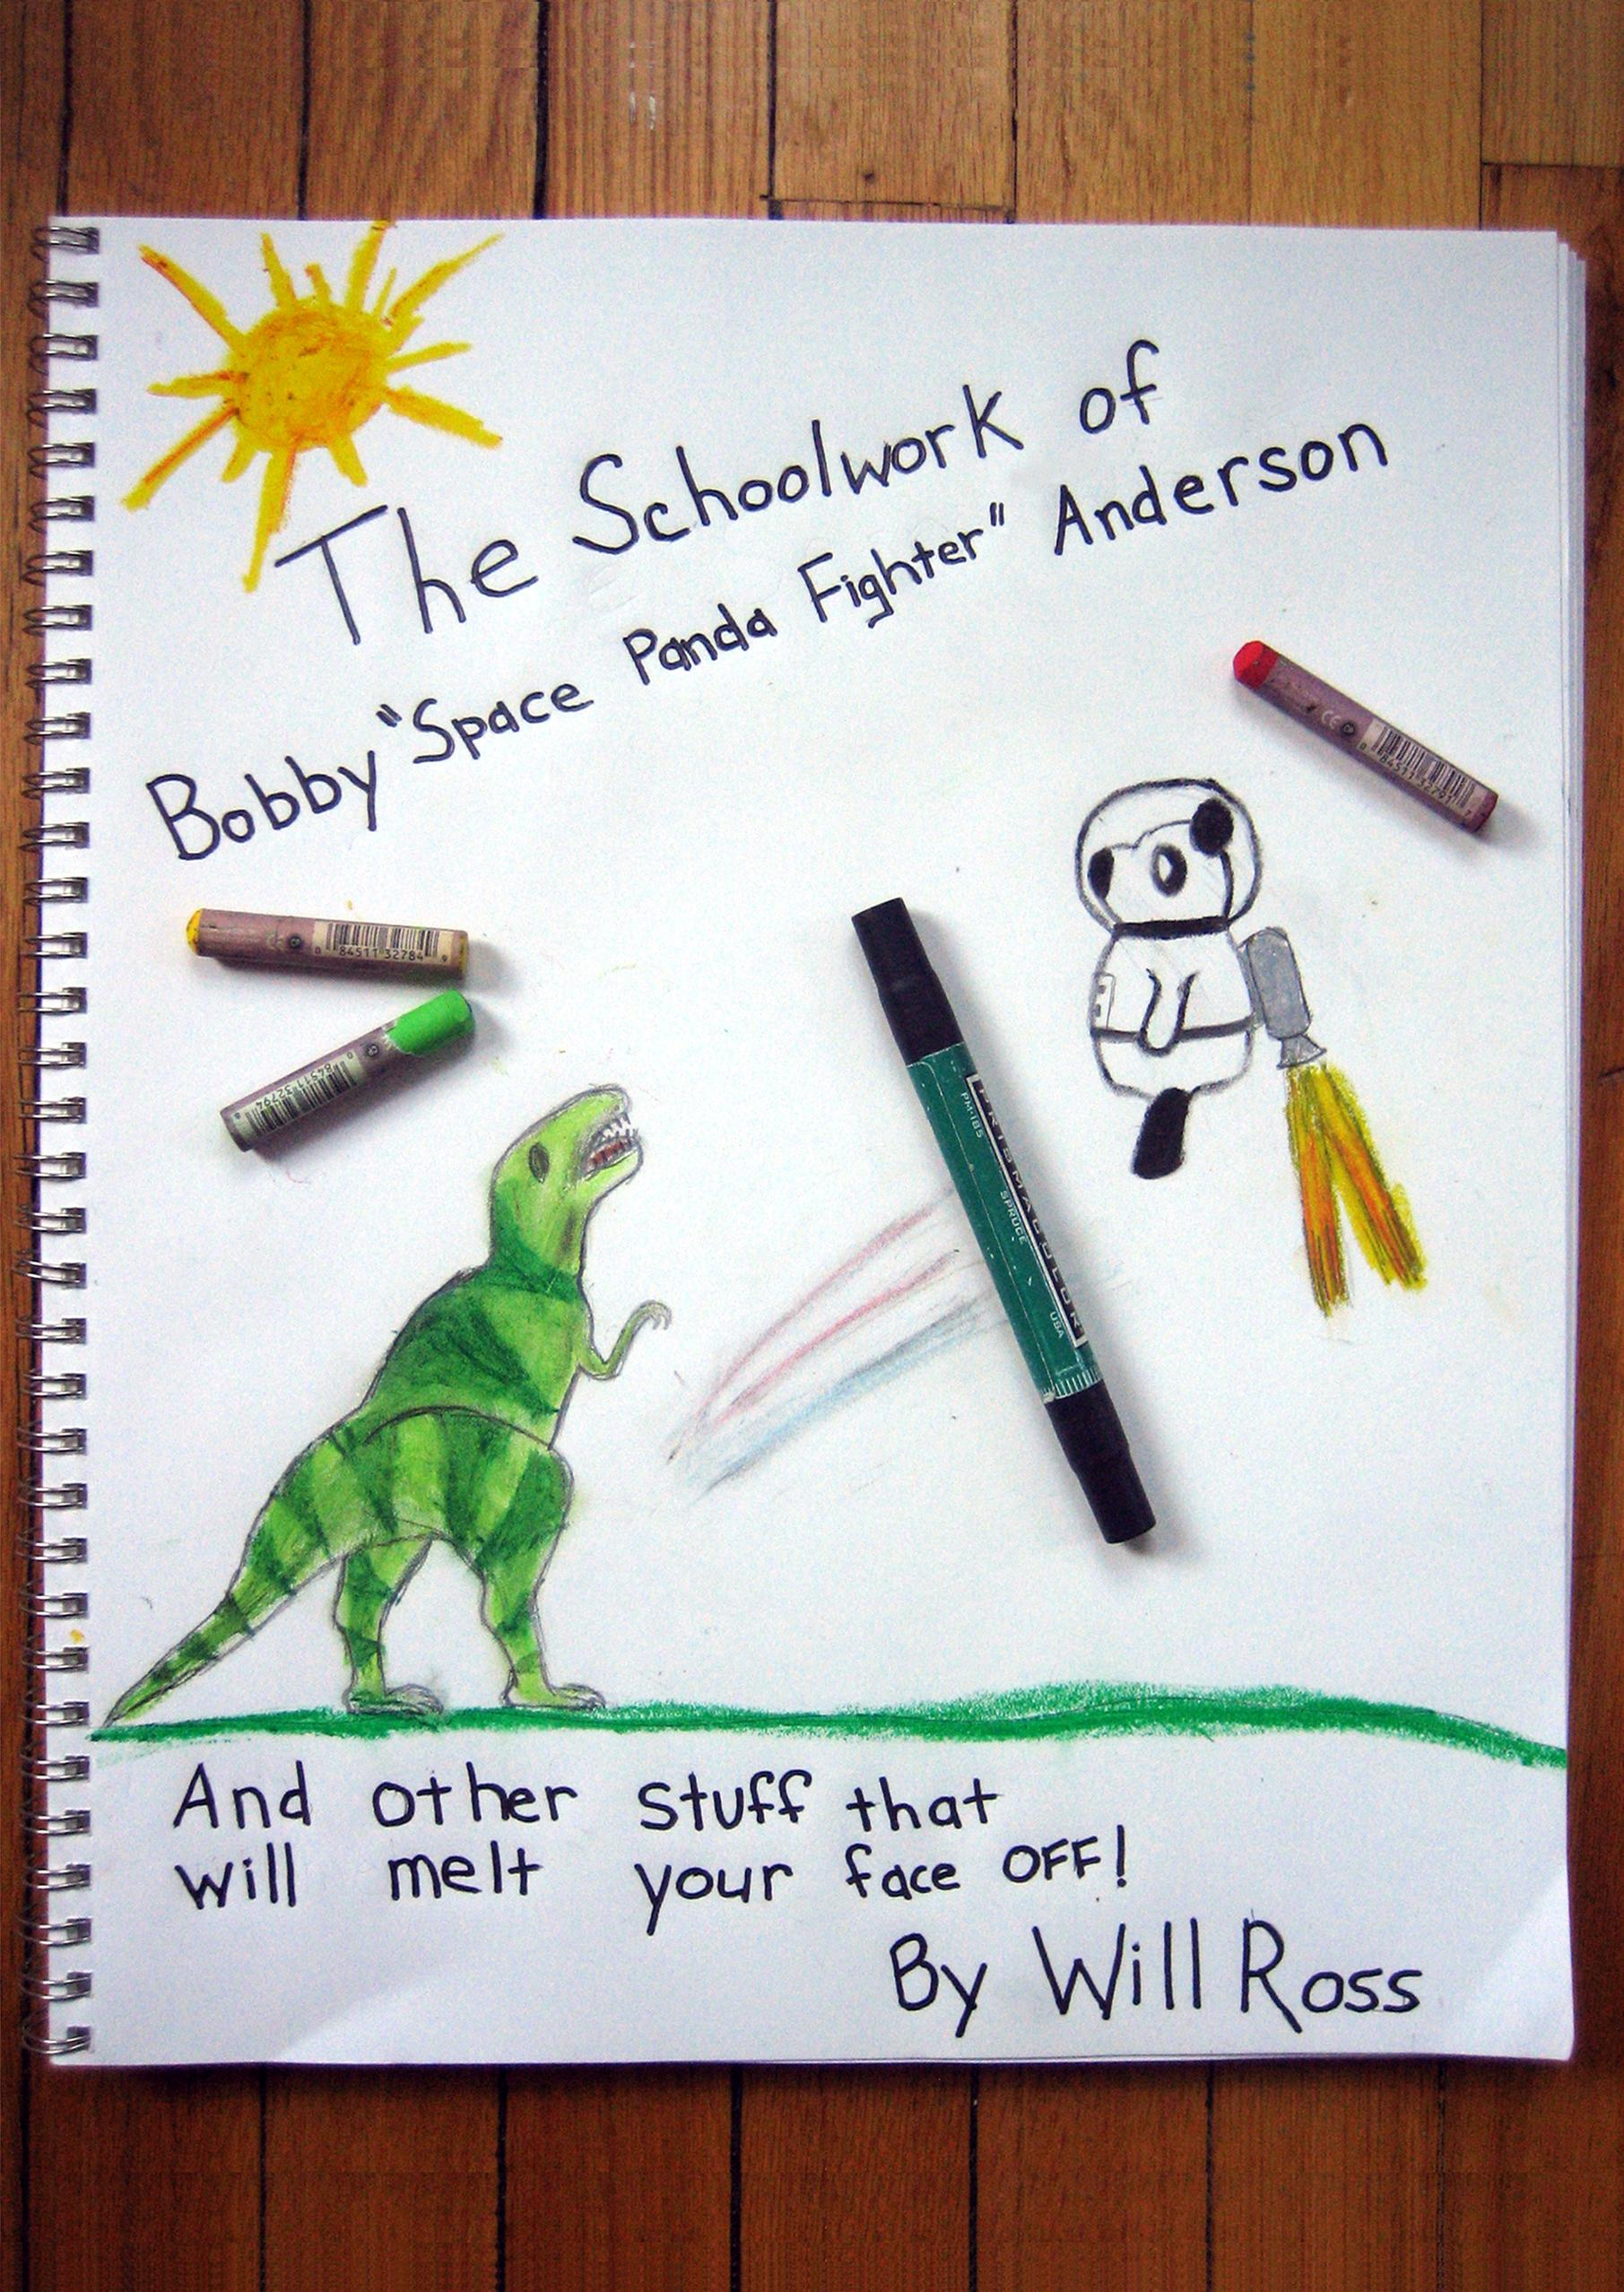 The Schoolwork of Bobby Anderson